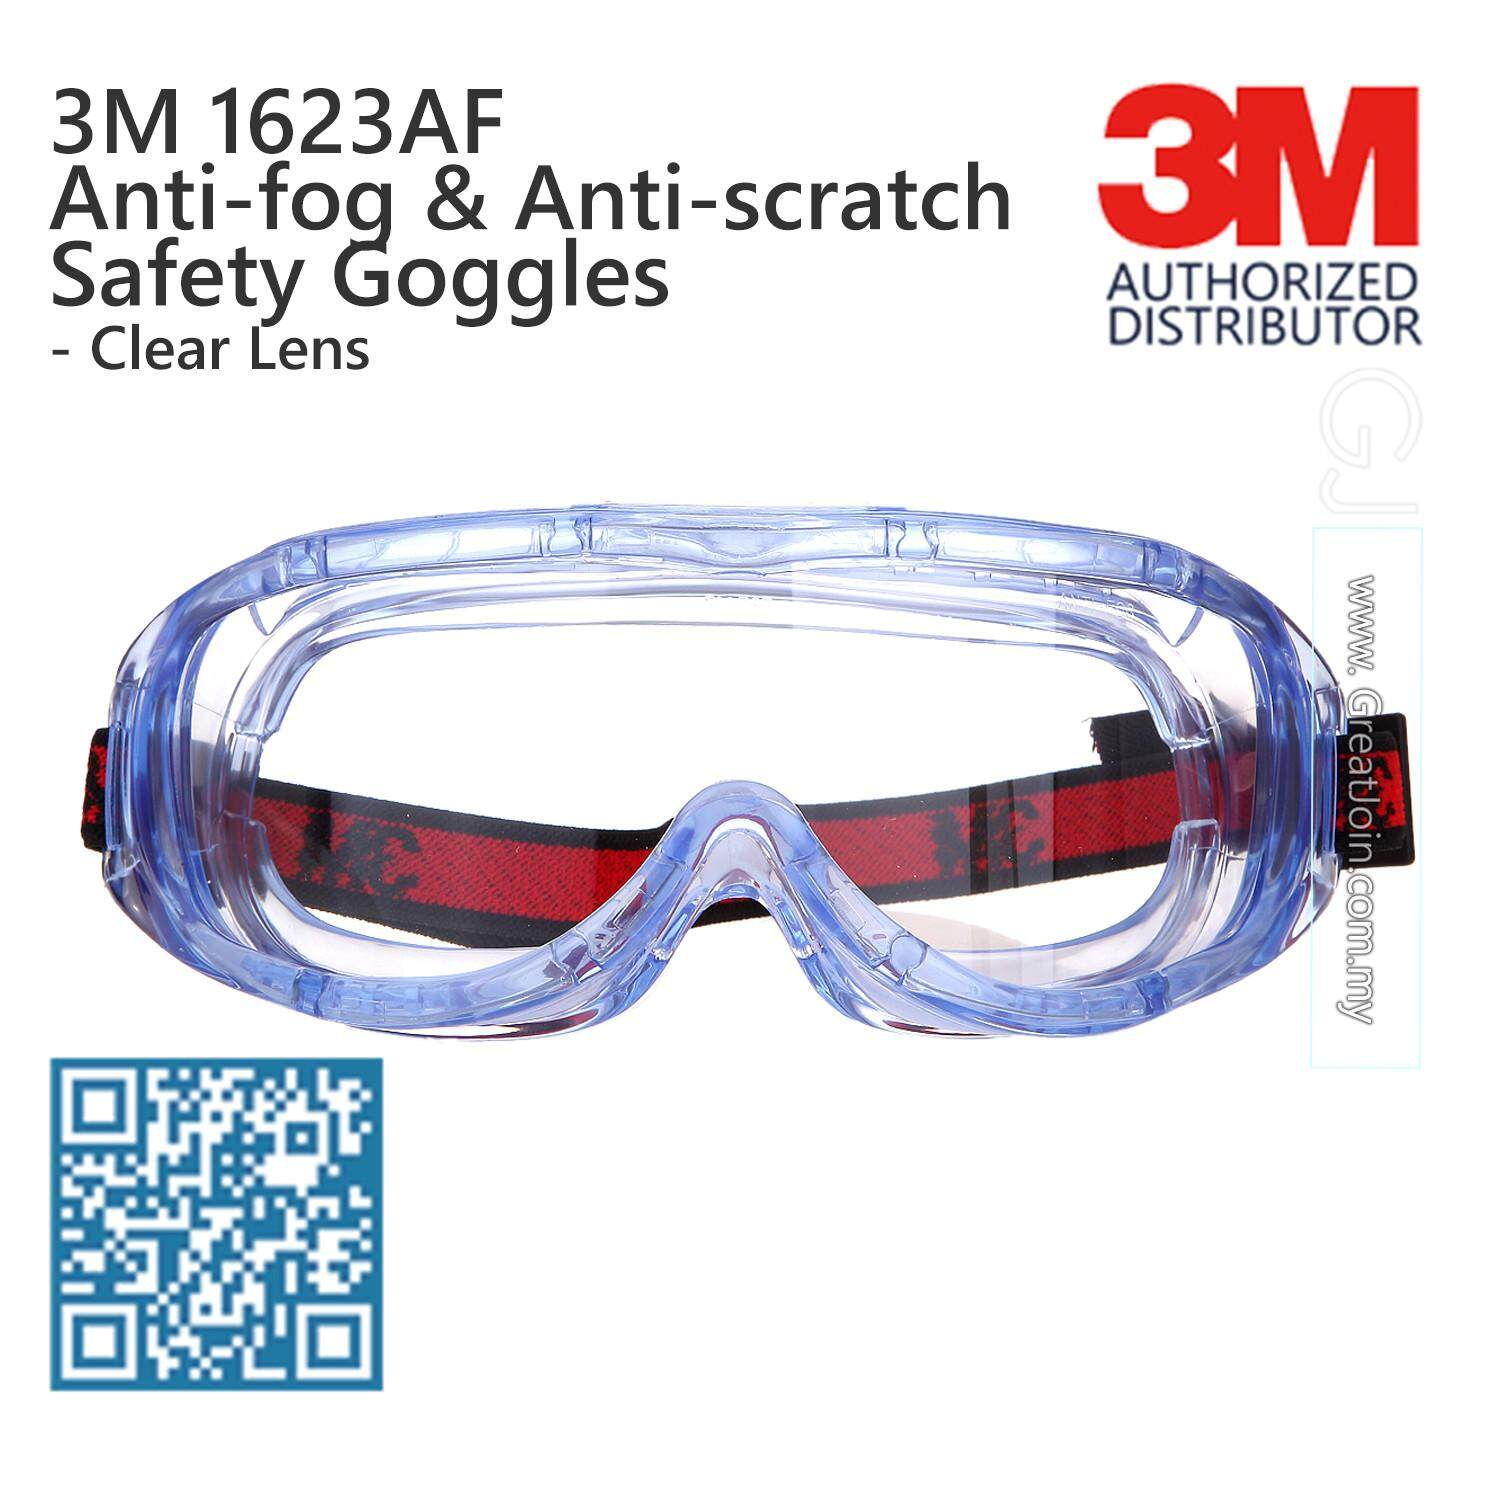 536abf9b4a 3M 1623AF Safety Goggles Anti Fog Anti Scratch UV Resistance  Clear   Transparent Lens